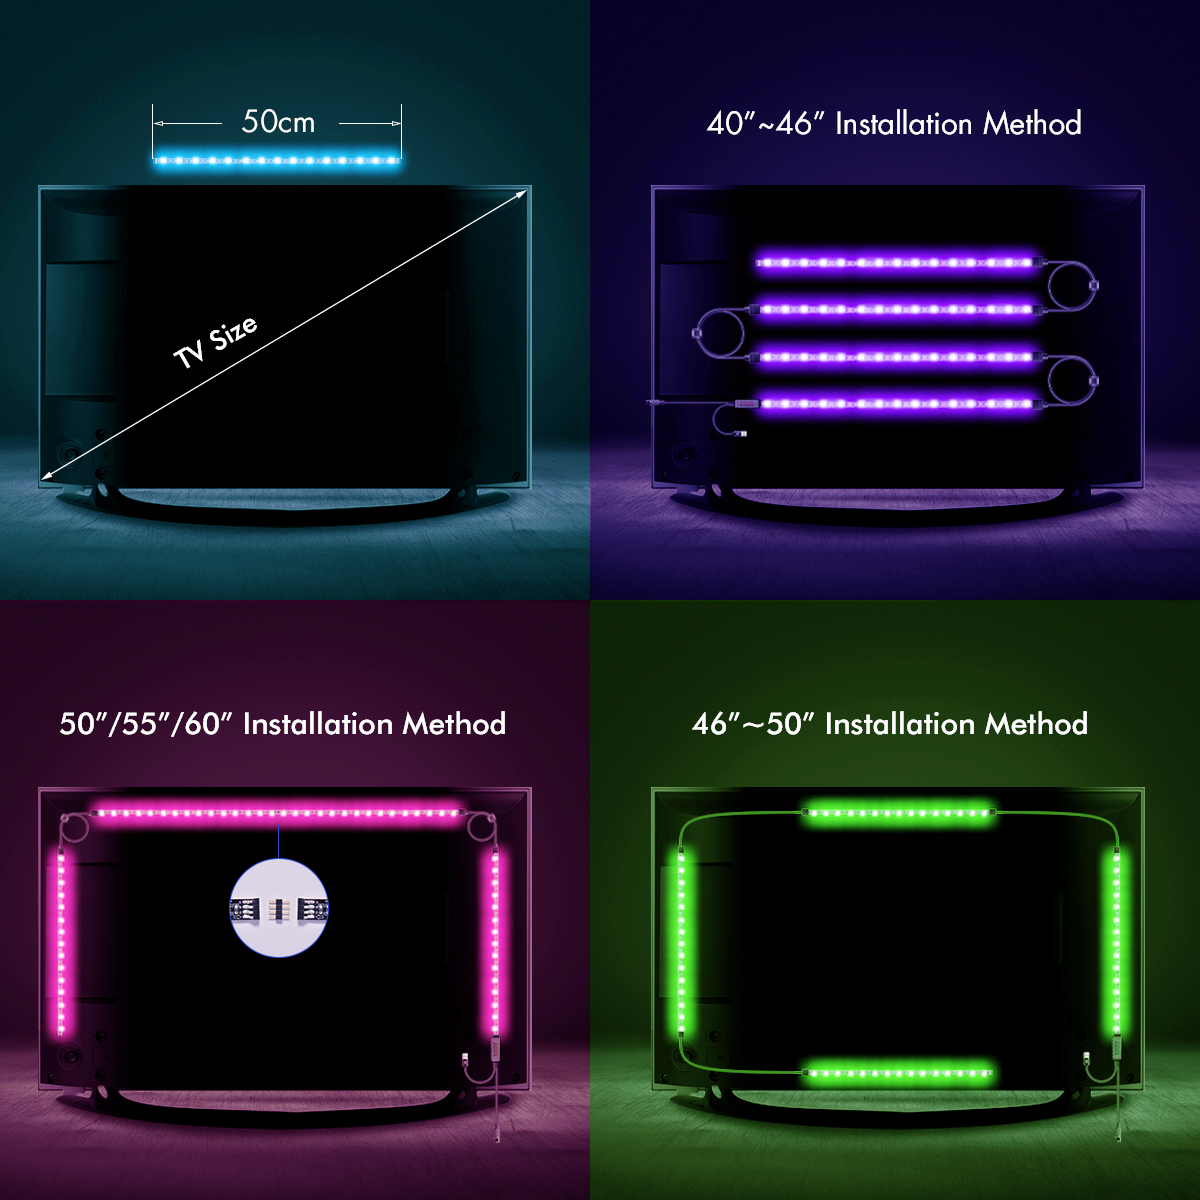 Led tv backlight powered rgb usb led strip lights for 40 to 60 inch 4 x 50cm164ft led strip 3 x 50cm164ft connetors for led strip 1 x 50cm164ft usb cable 1 x 44 key remote 1 x manual 5 x adhesive hooks aloadofball Images